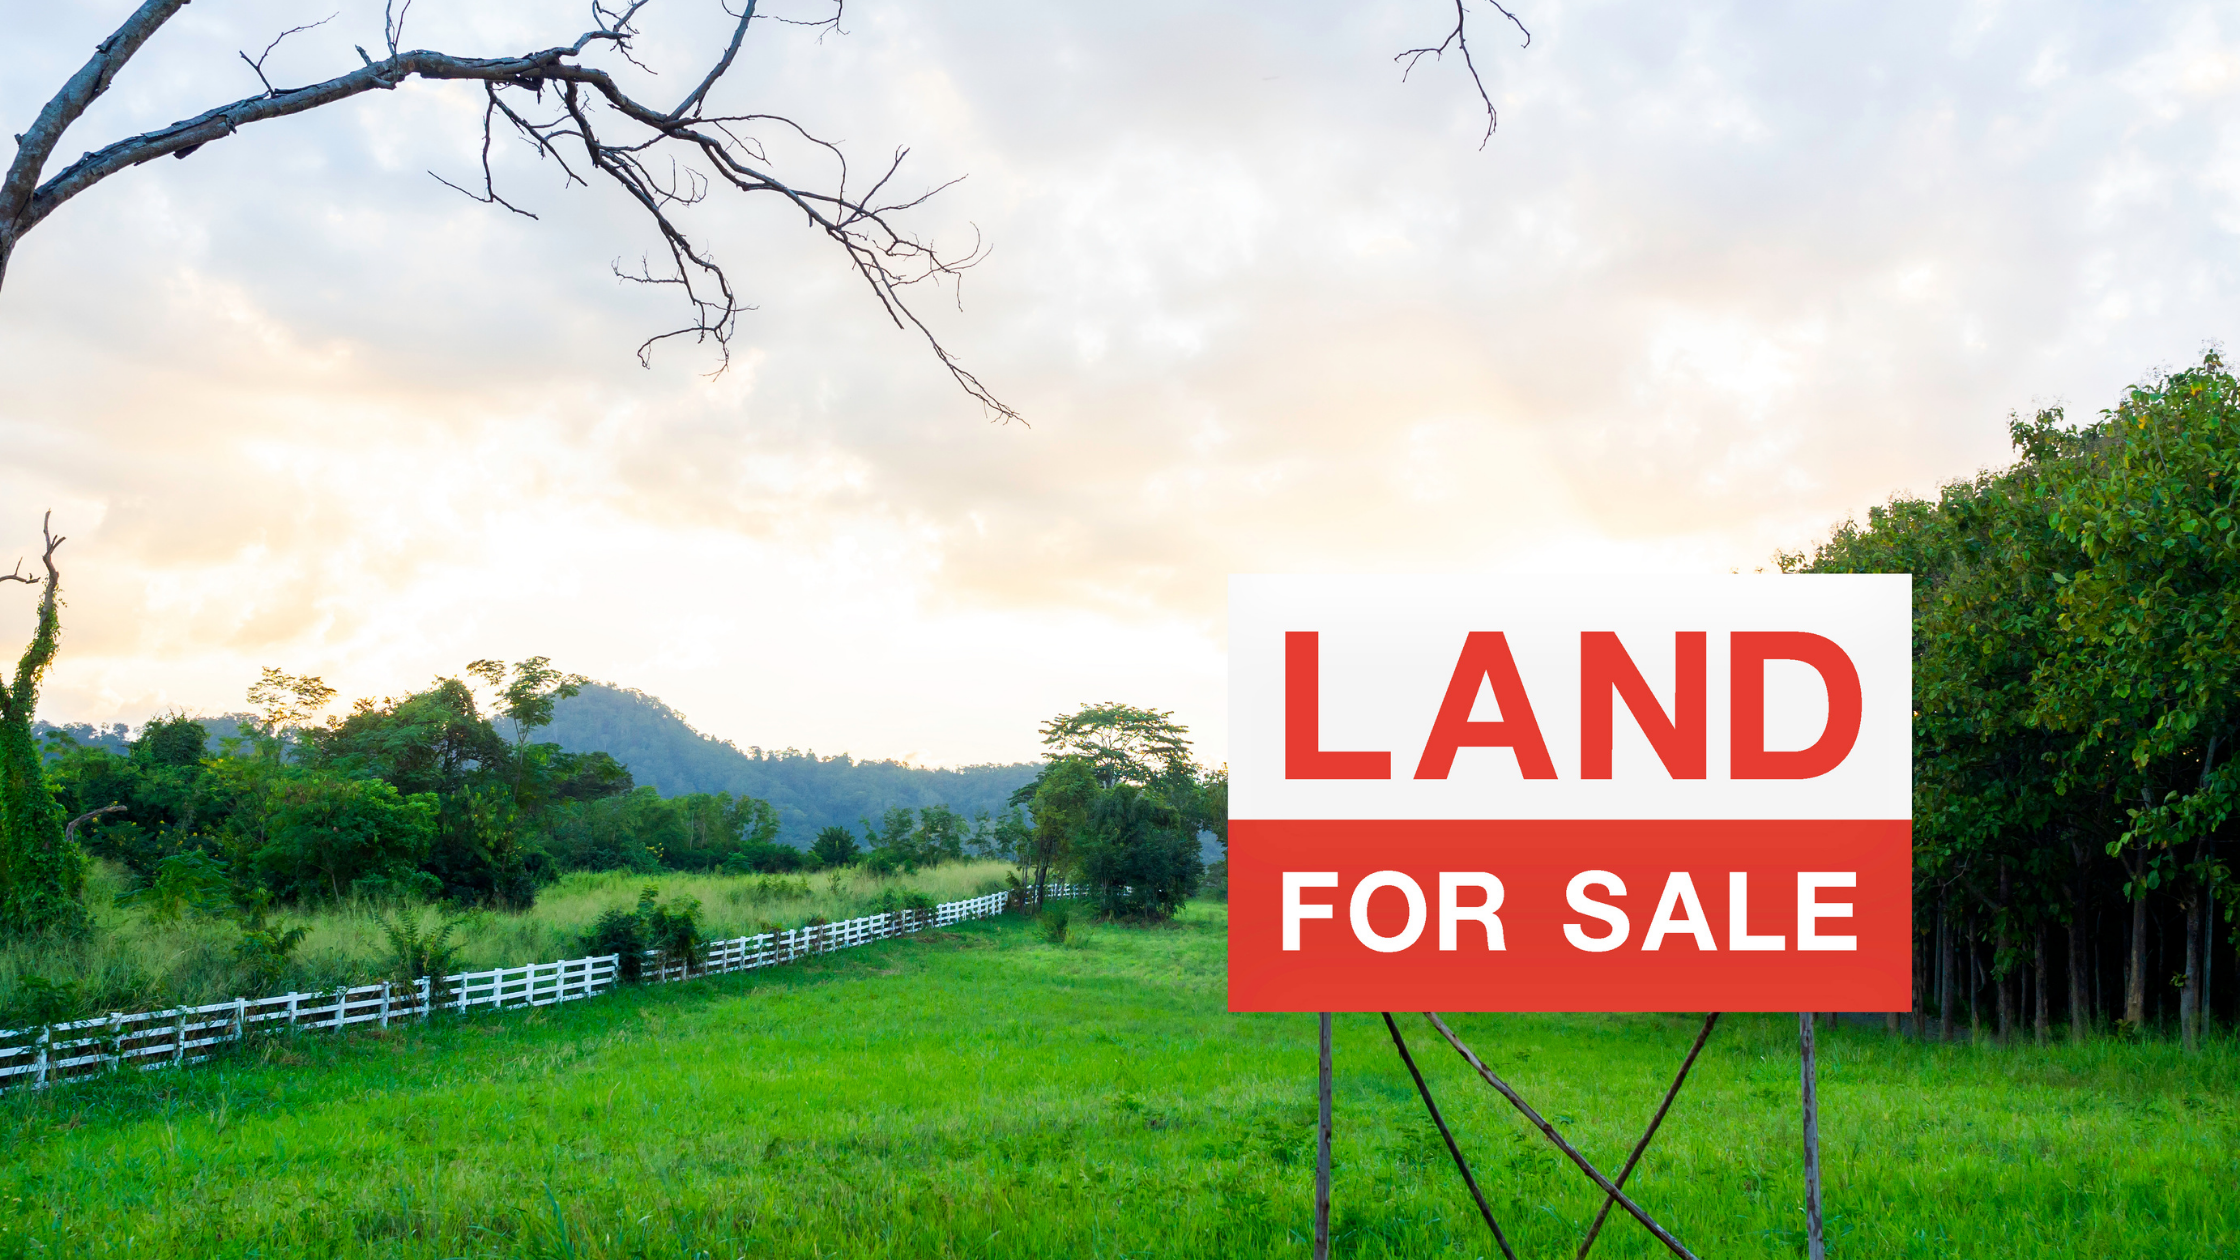 Land for Manufactured Home